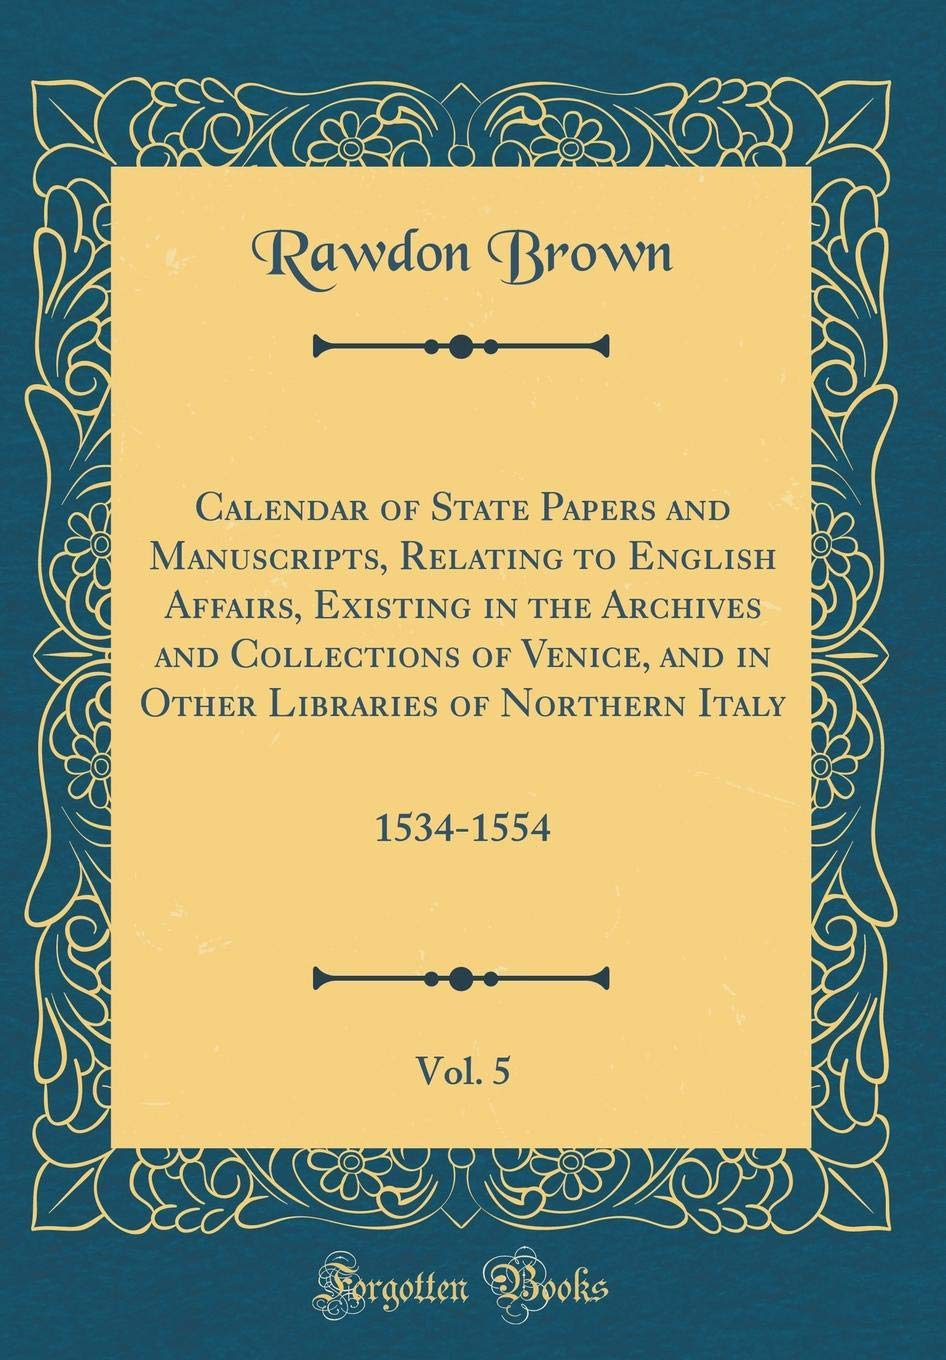 Read Online Calendar of State Papers and Manuscripts, Relating to English Affairs, Existing in the Archives and Collections of Venice, and in Other Libraries of Northern Italy, Vol. 5: 1534-1554 (Classic Reprint) ebook